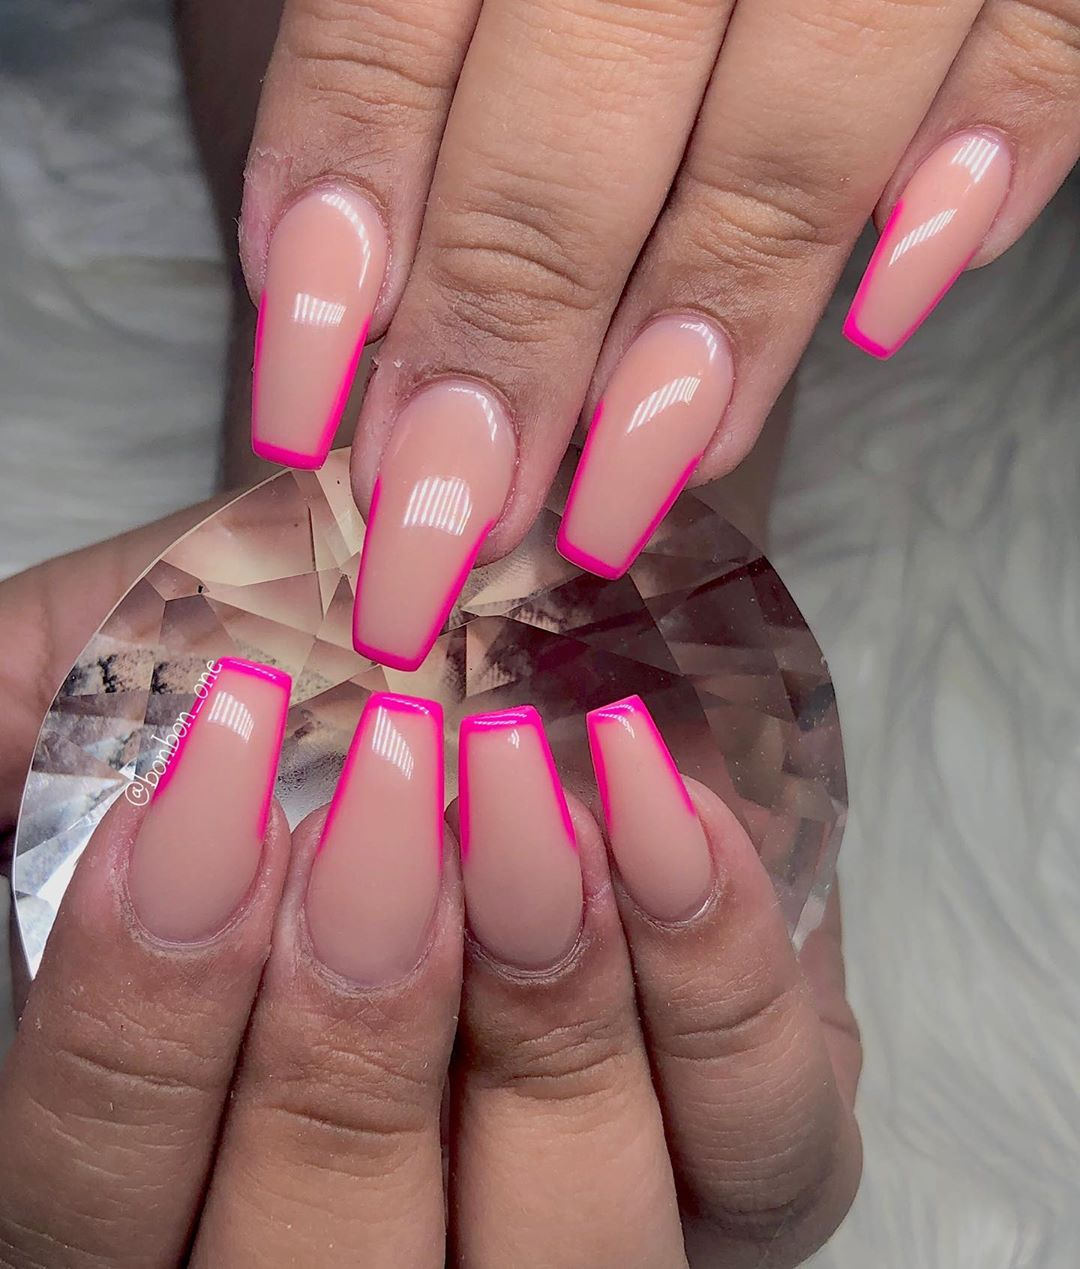 nude-and-pink-manicure-trend-2020-isimbo-rave